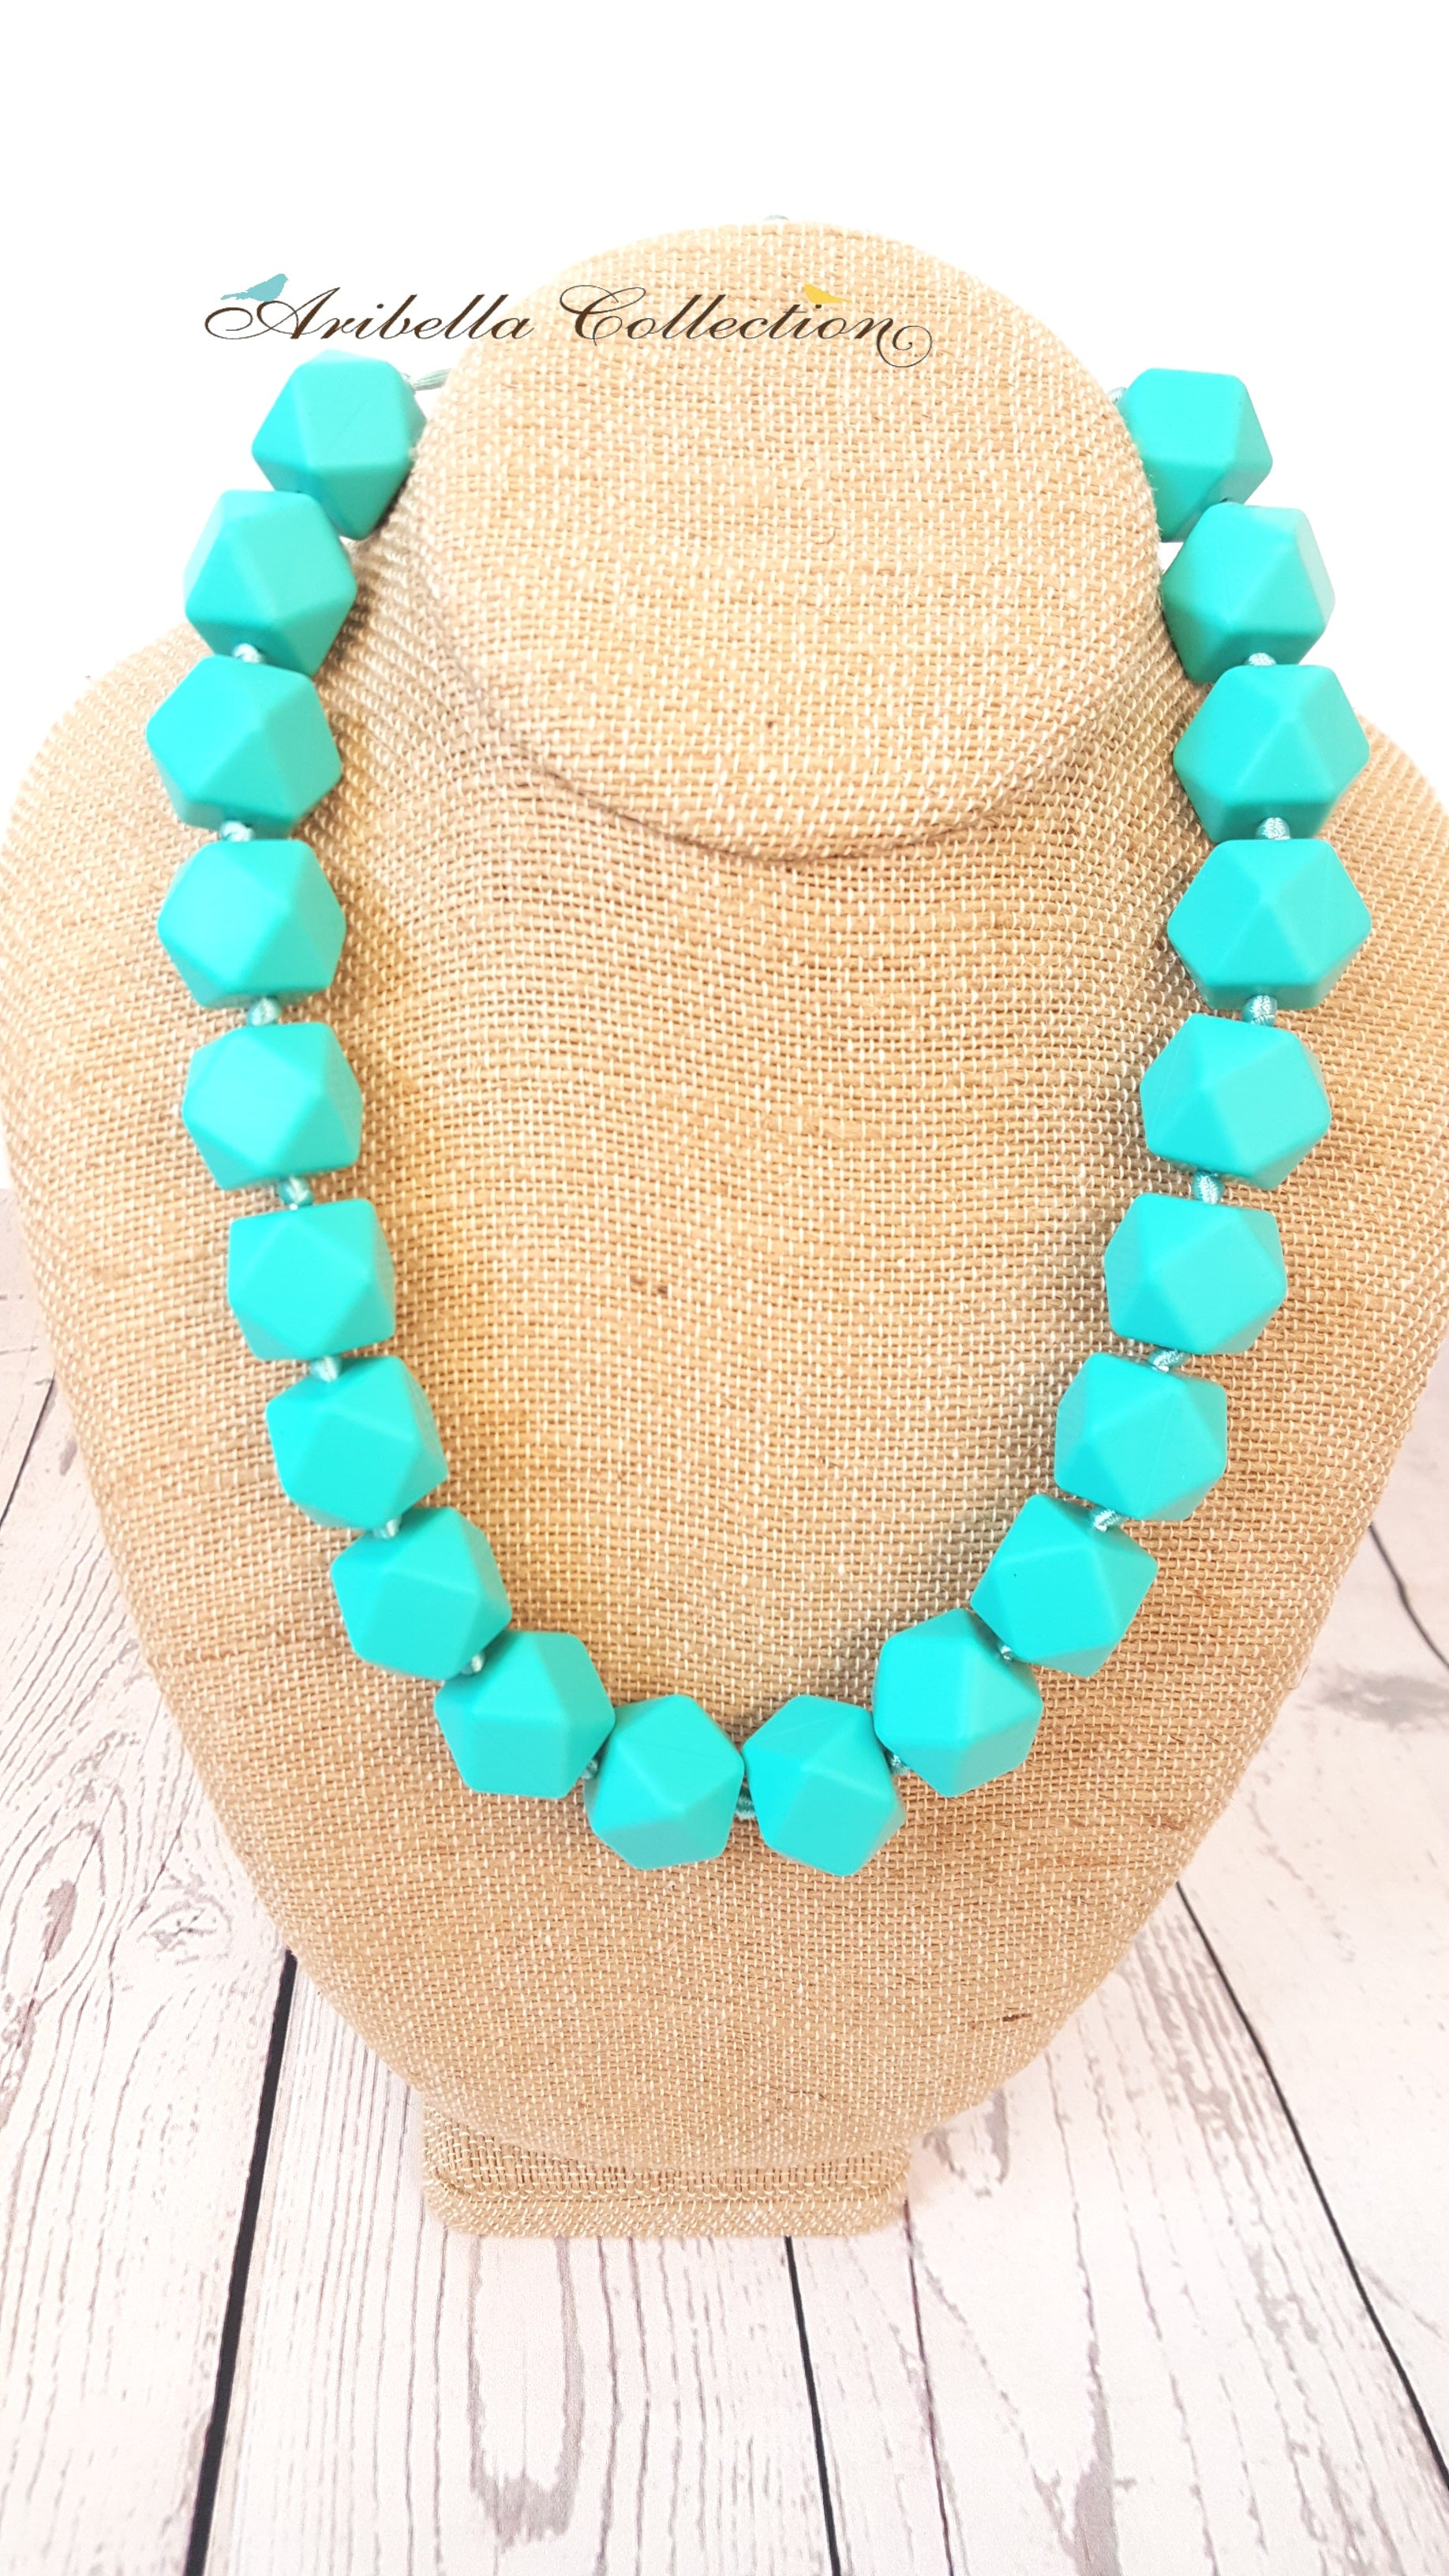 Silicone Necklace - Turquoise - Aribella Collection